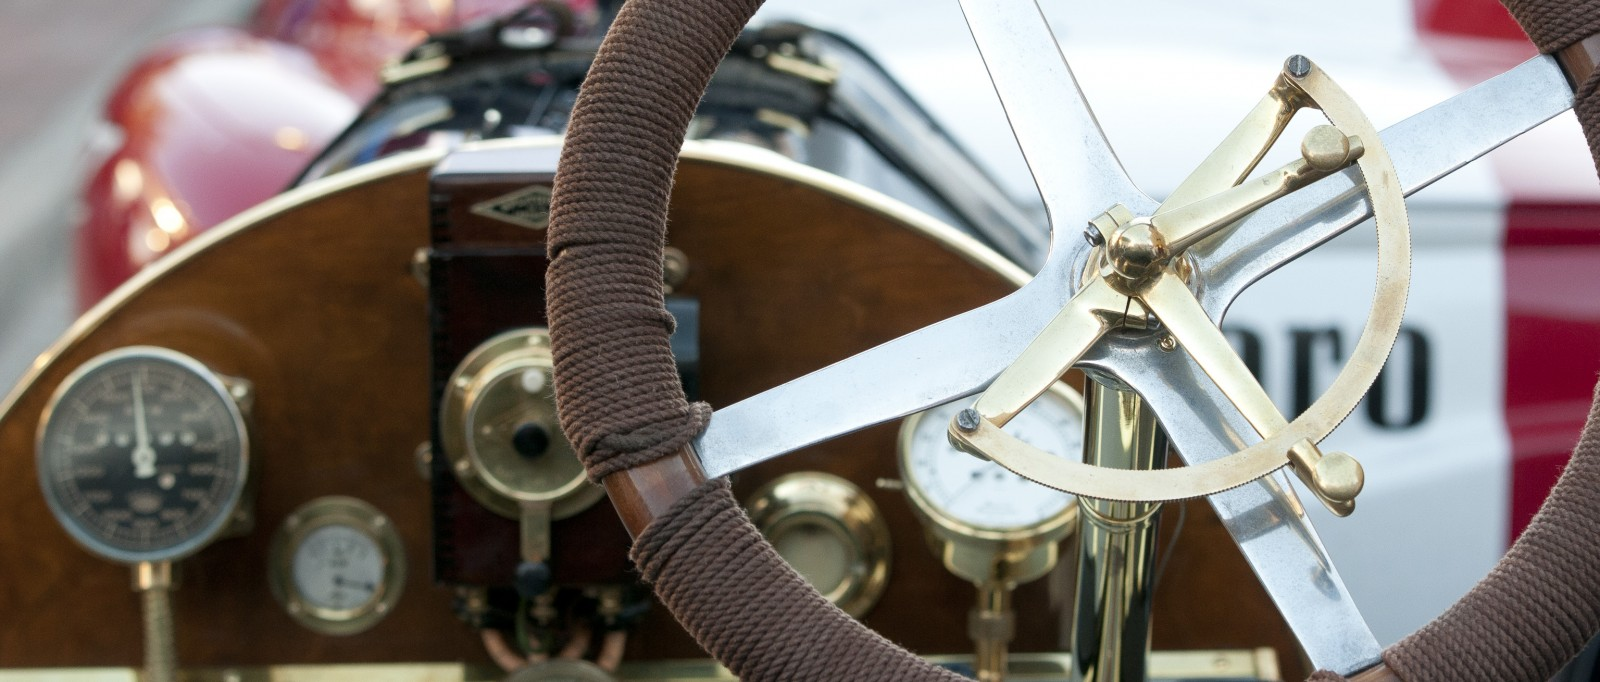 CLose up of a vechicle at the Hitlon Head Island Concours d'Elegance